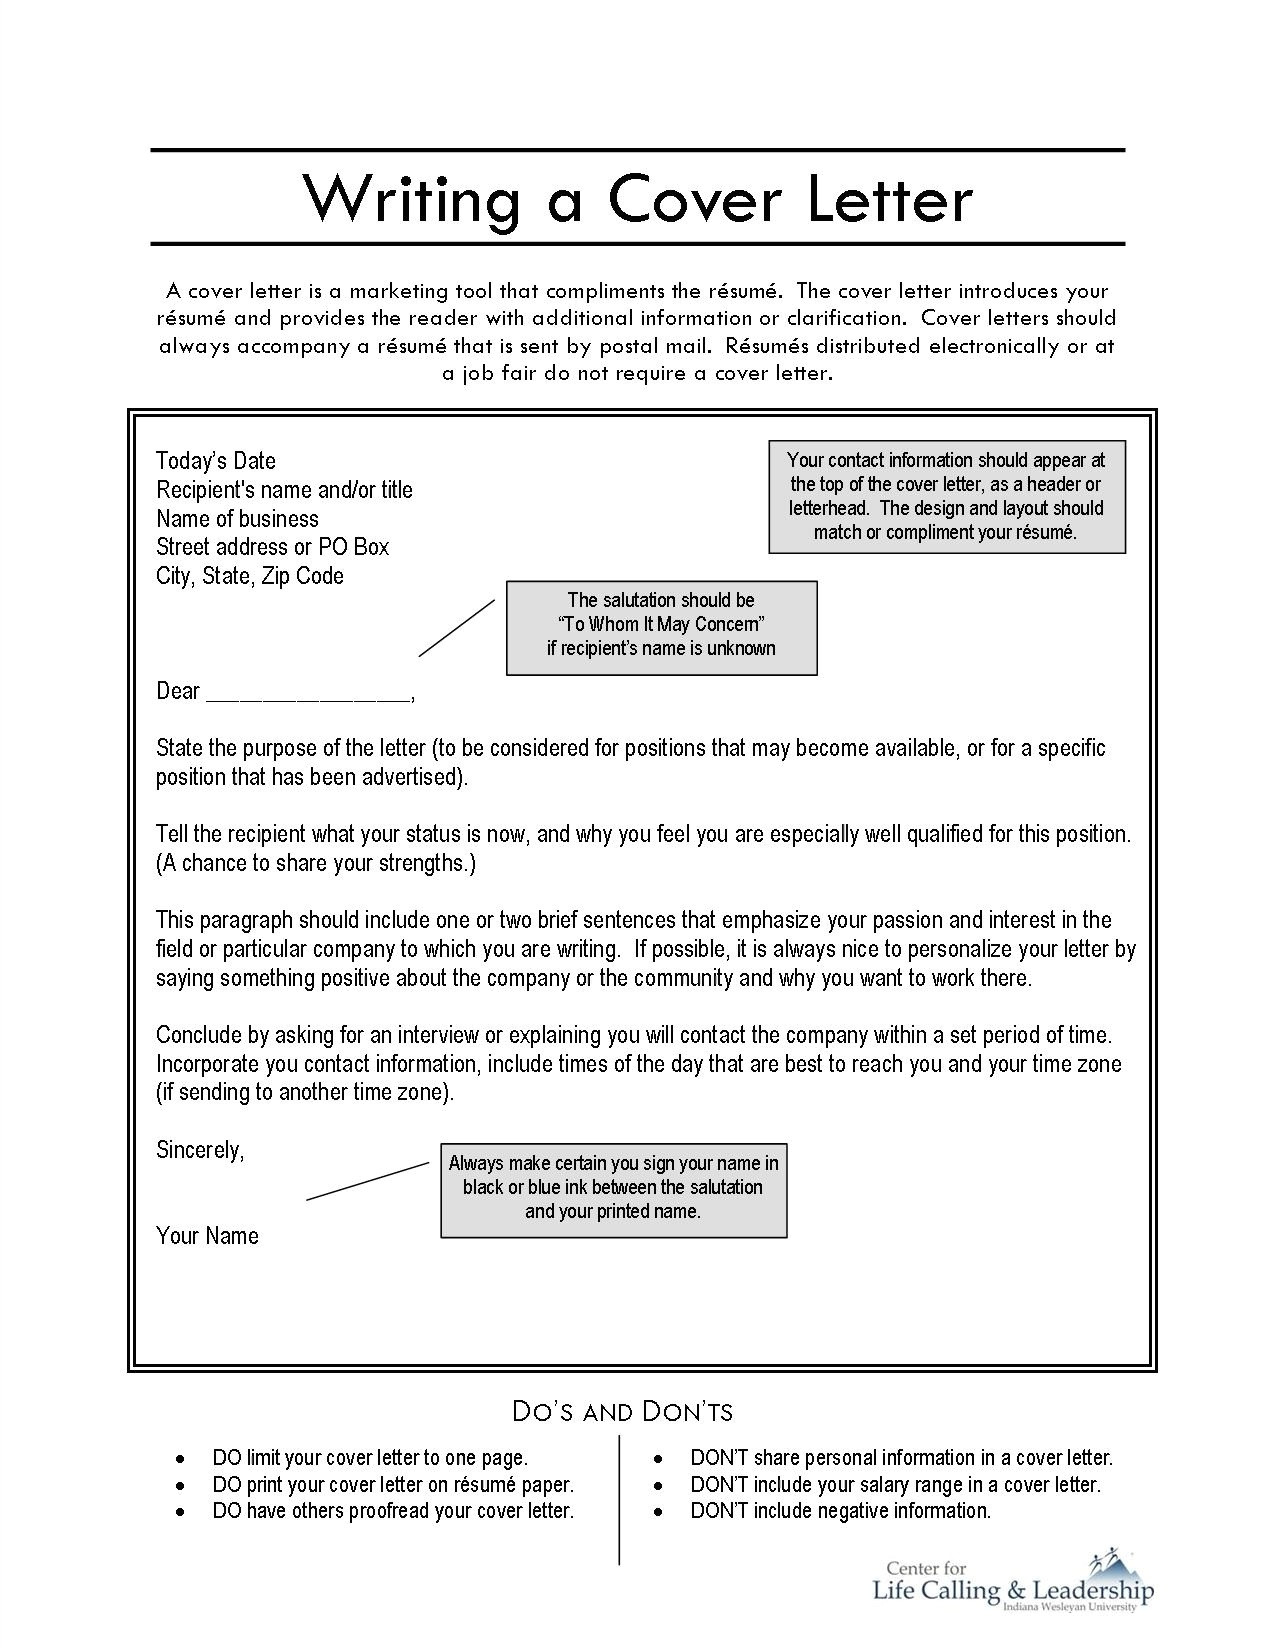 write a letter online and print it